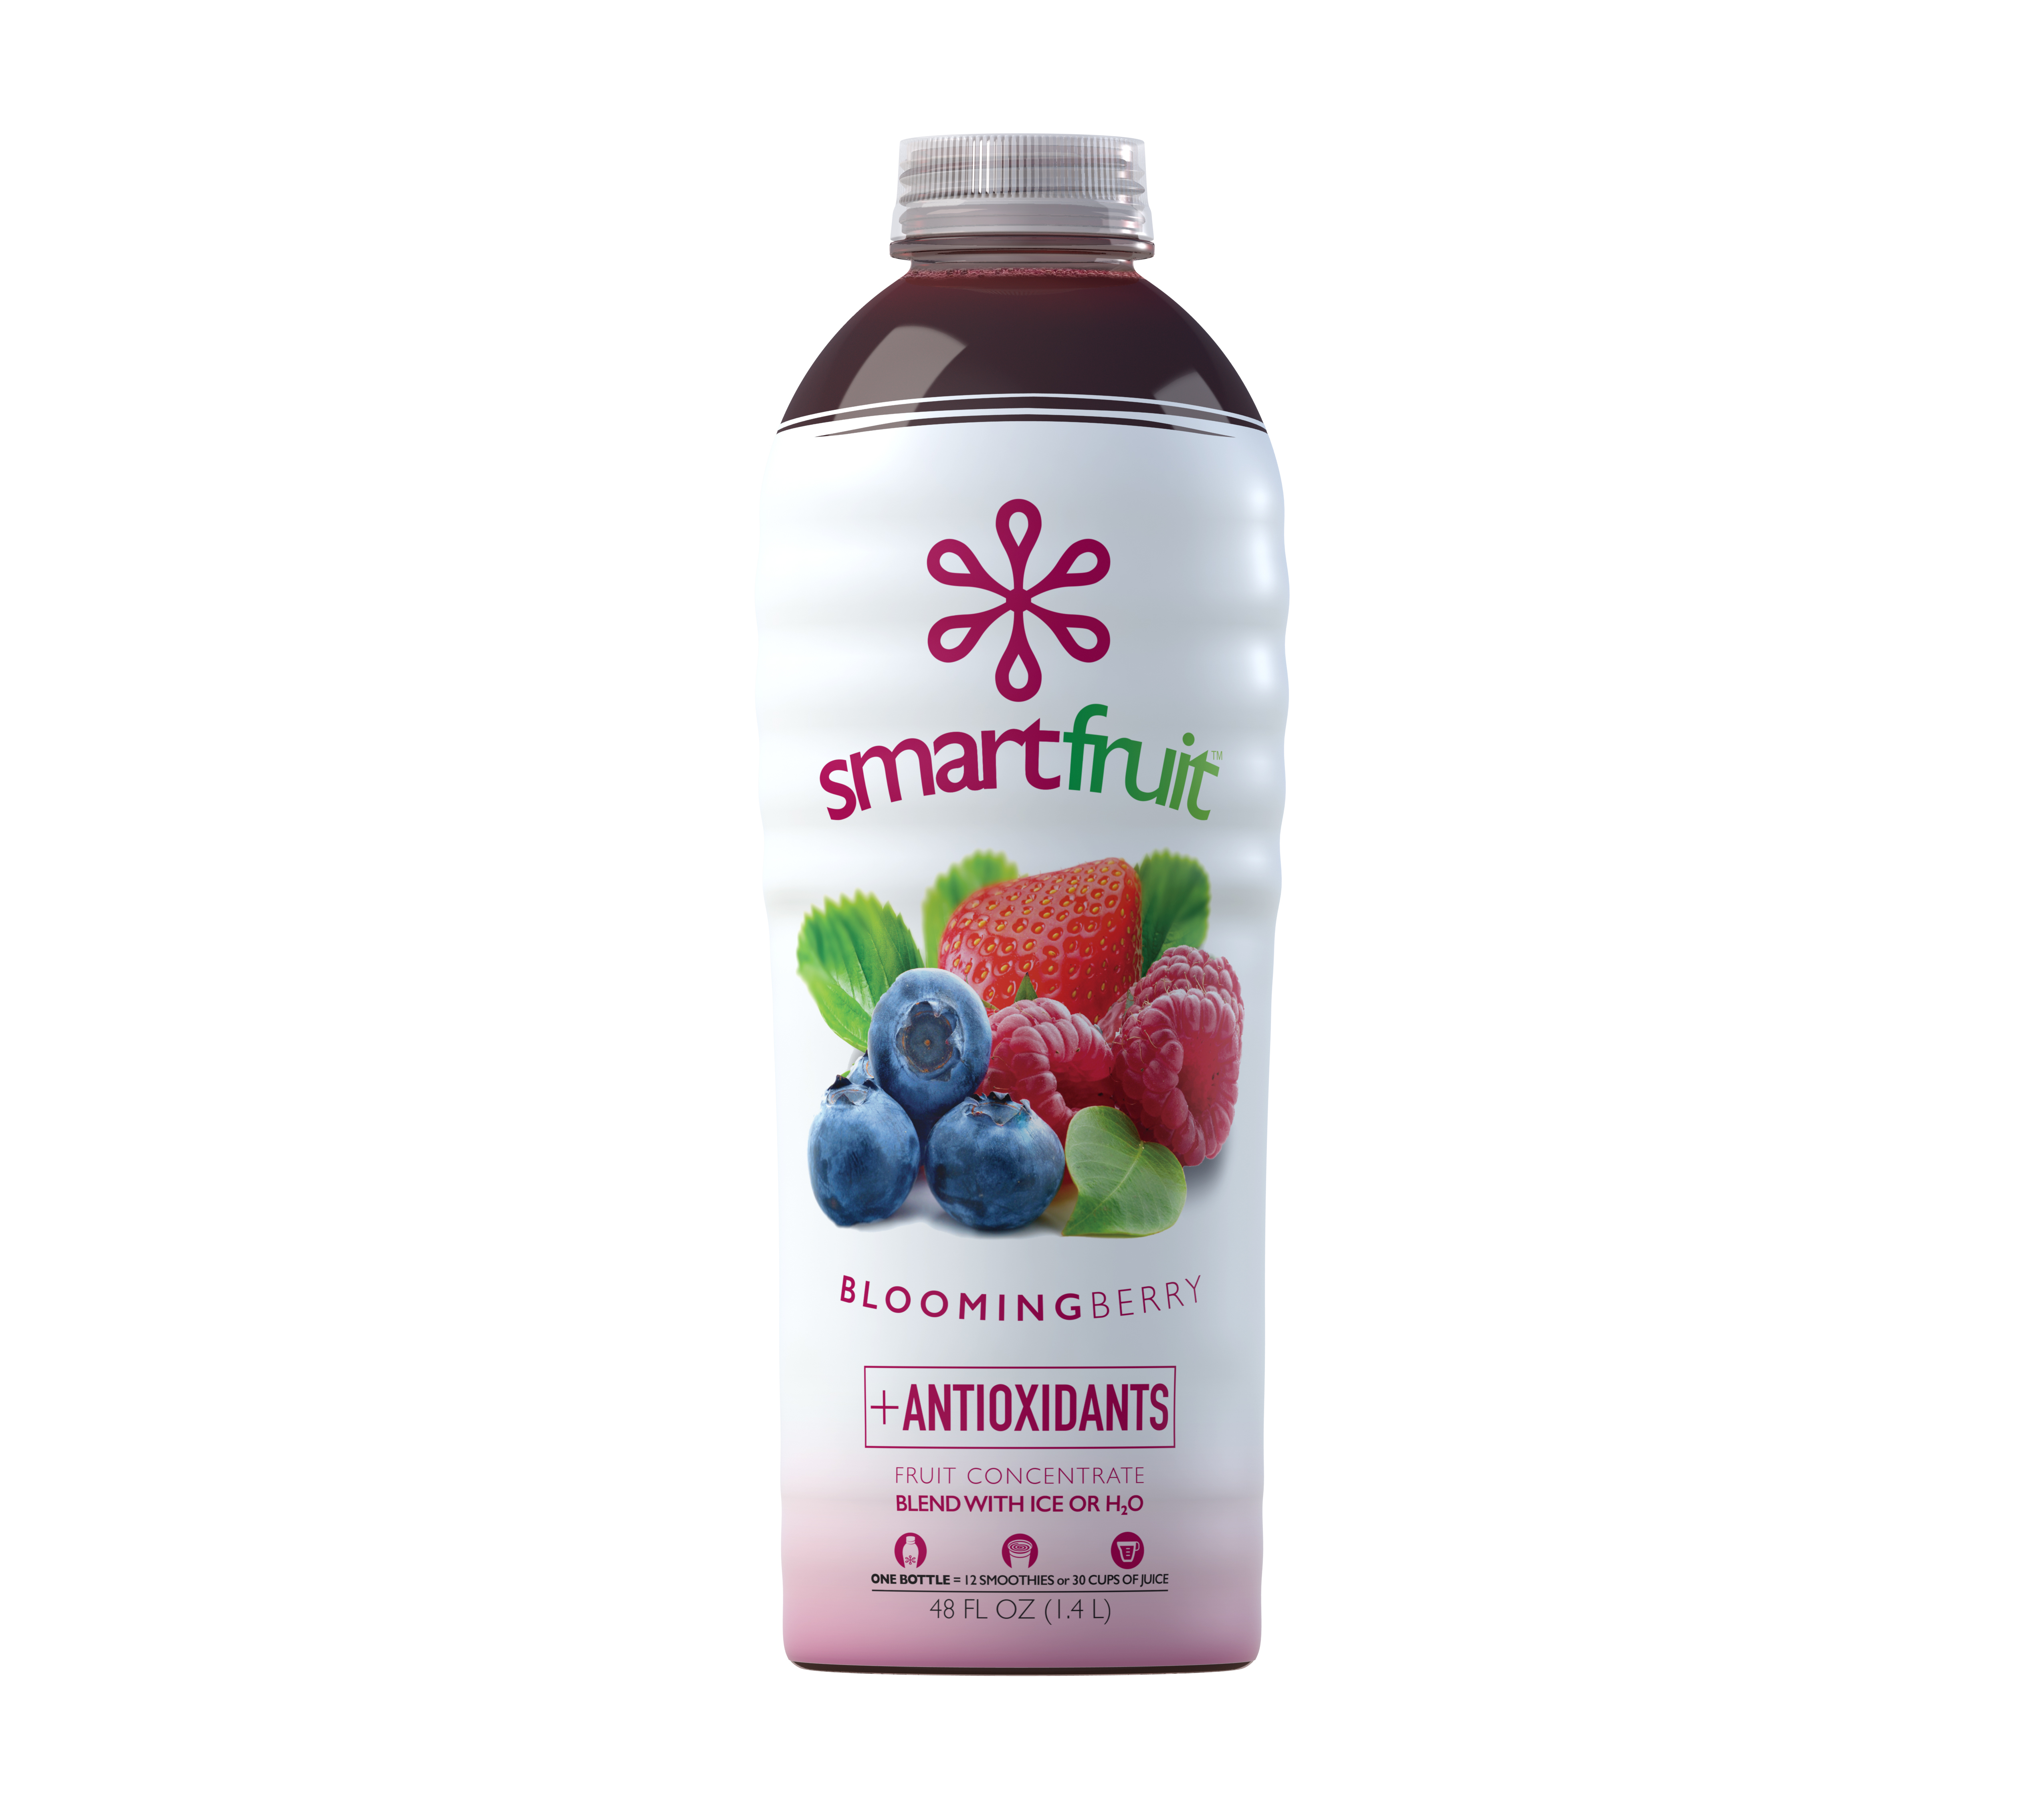 Blooming Berry Antioxidants Fruit Concentrate The Natural